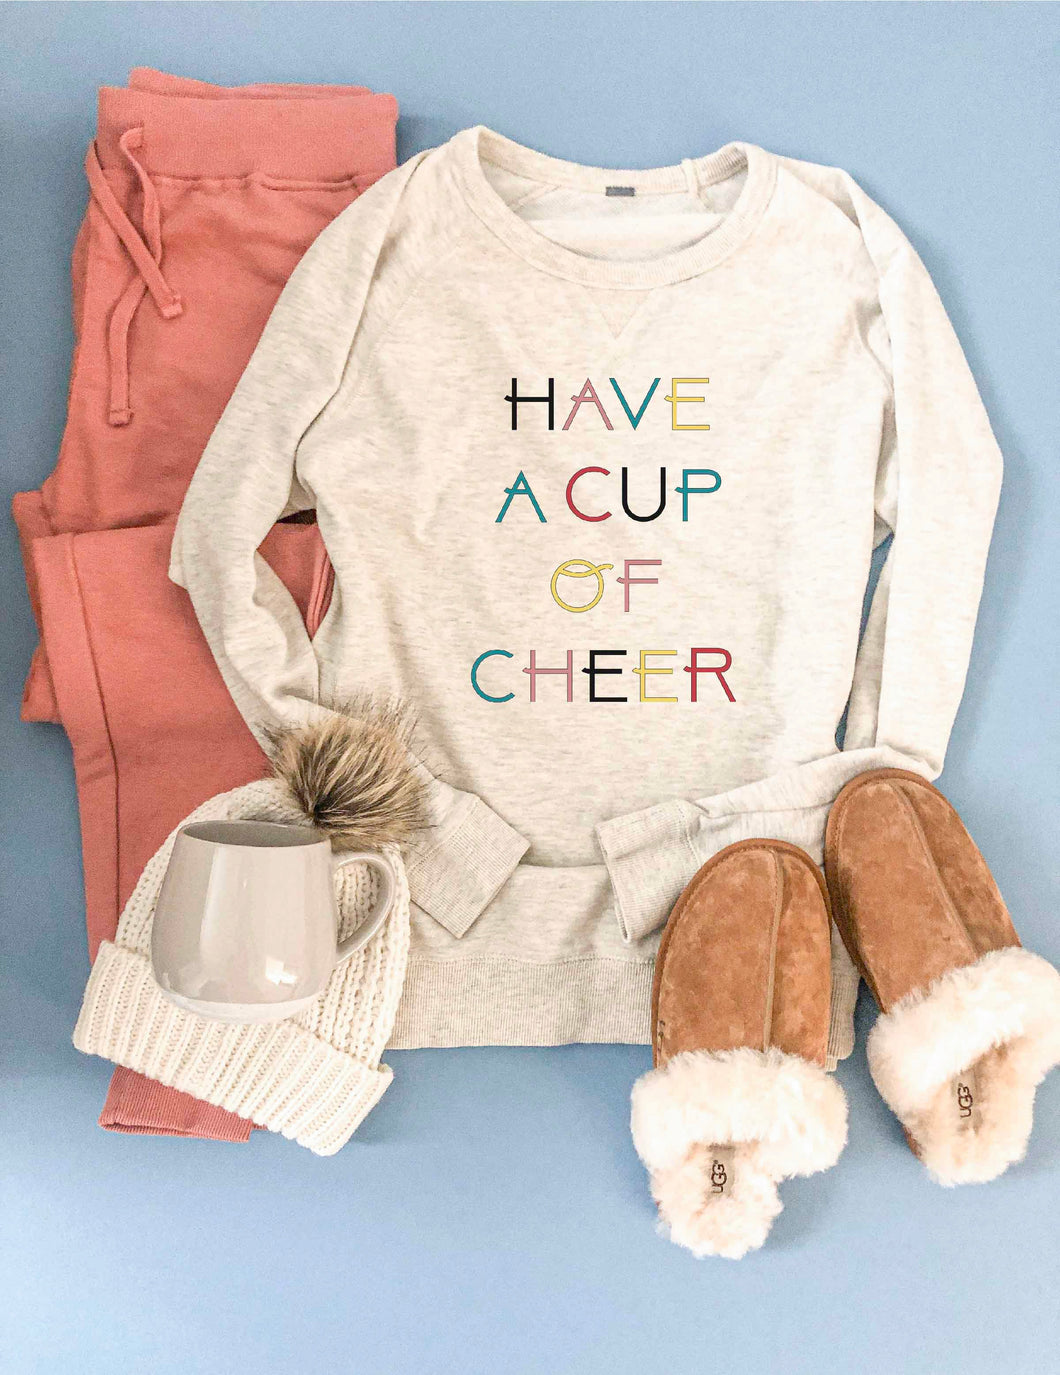 Have a cup of cheer french terry raglan sweatshirt